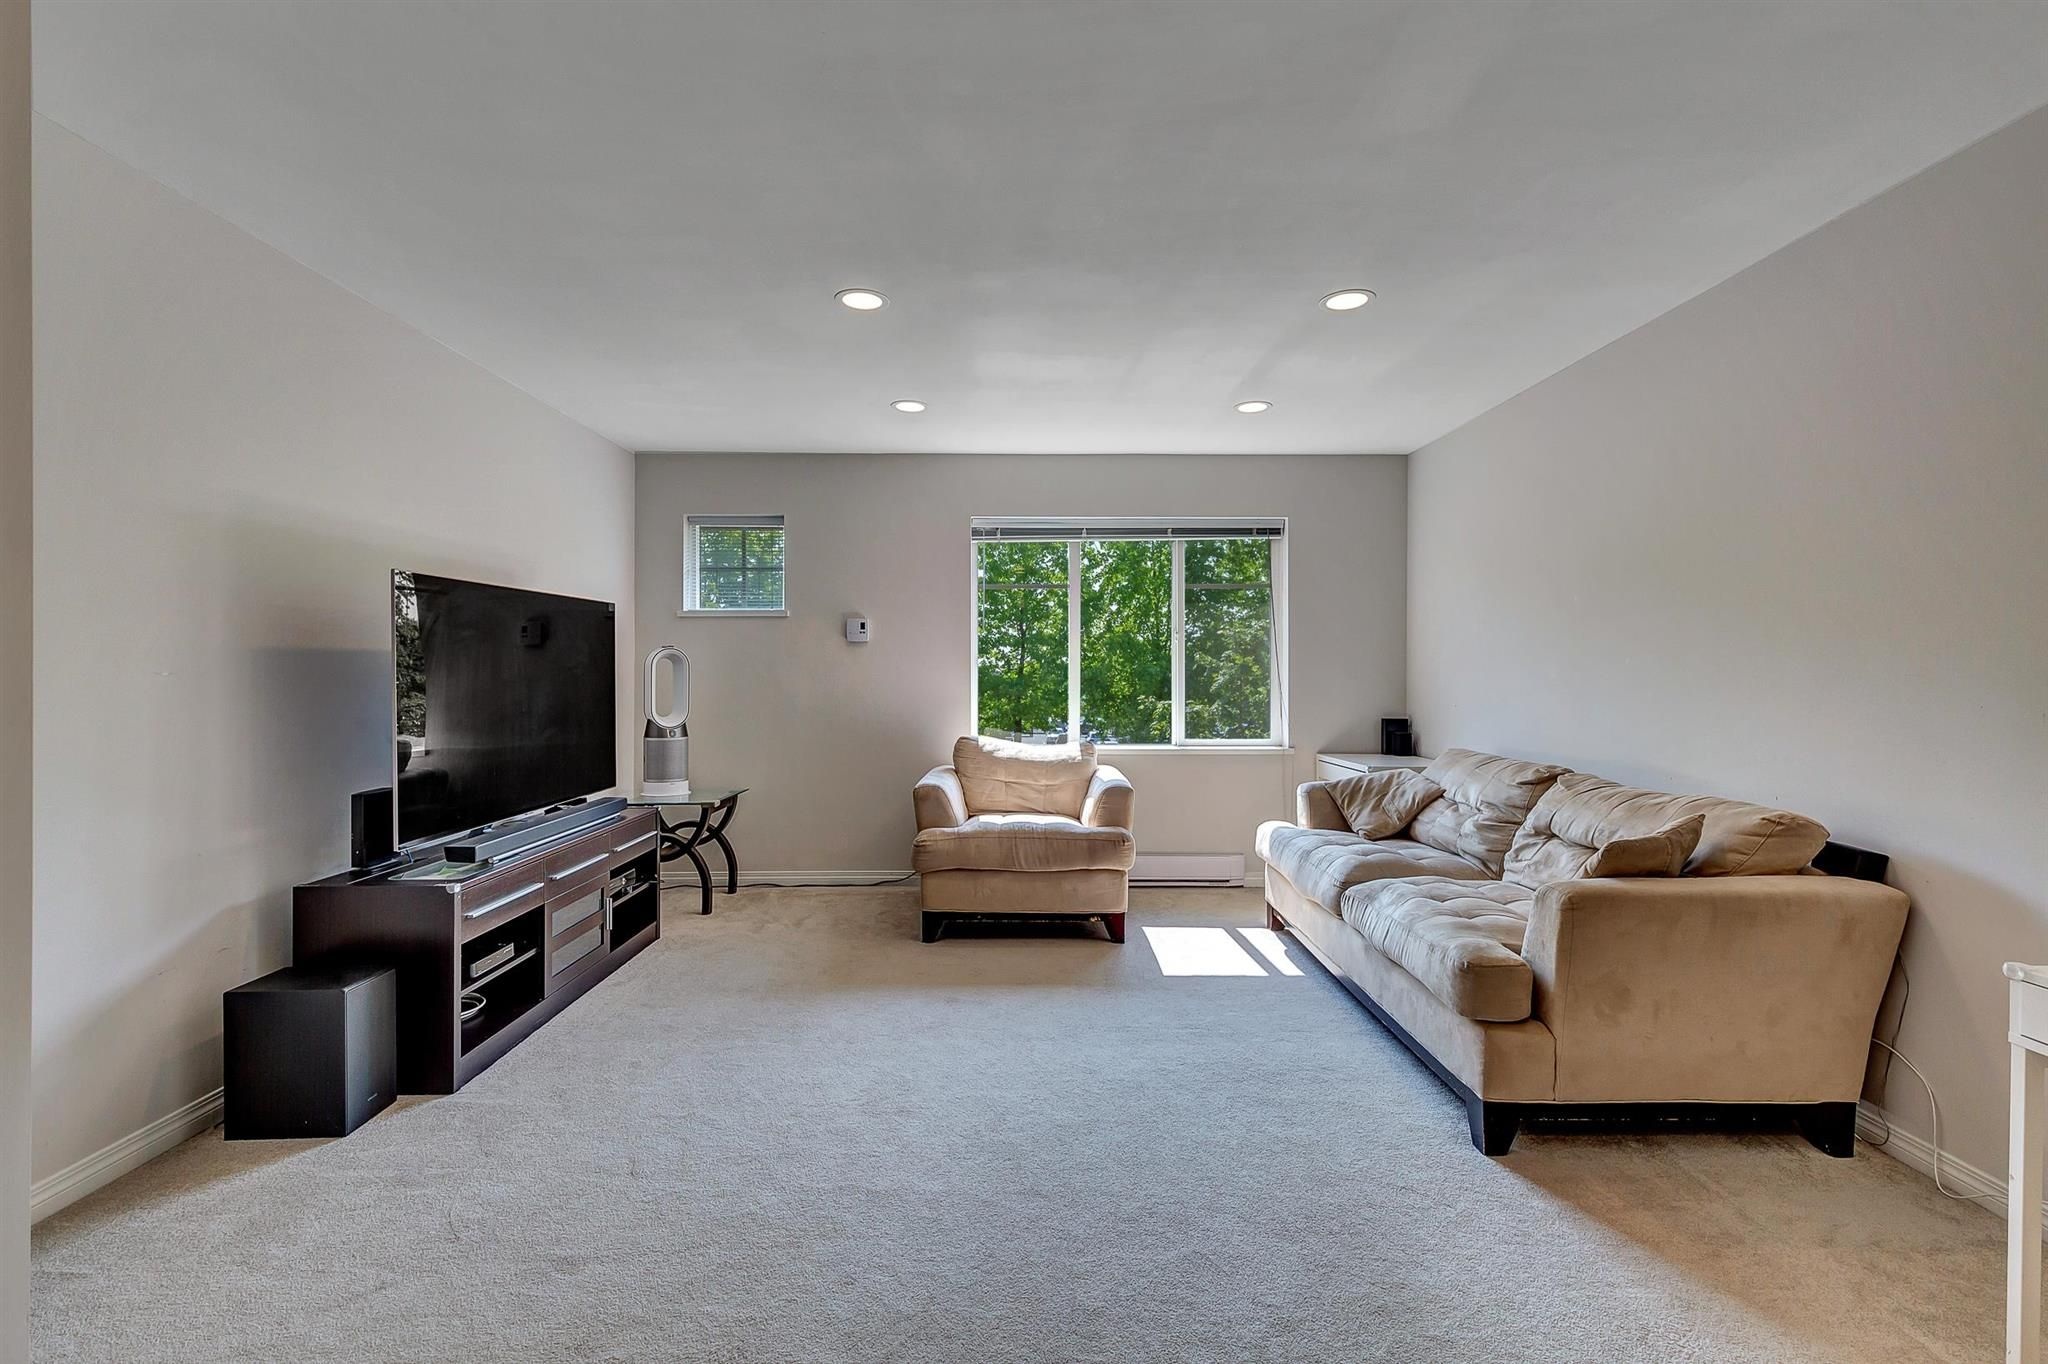 """Photo 5: Photos: 9 15871 85 Avenue in Surrey: Fleetwood Tynehead Townhouse for sale in """"Huckleberry"""" : MLS®# R2606668"""